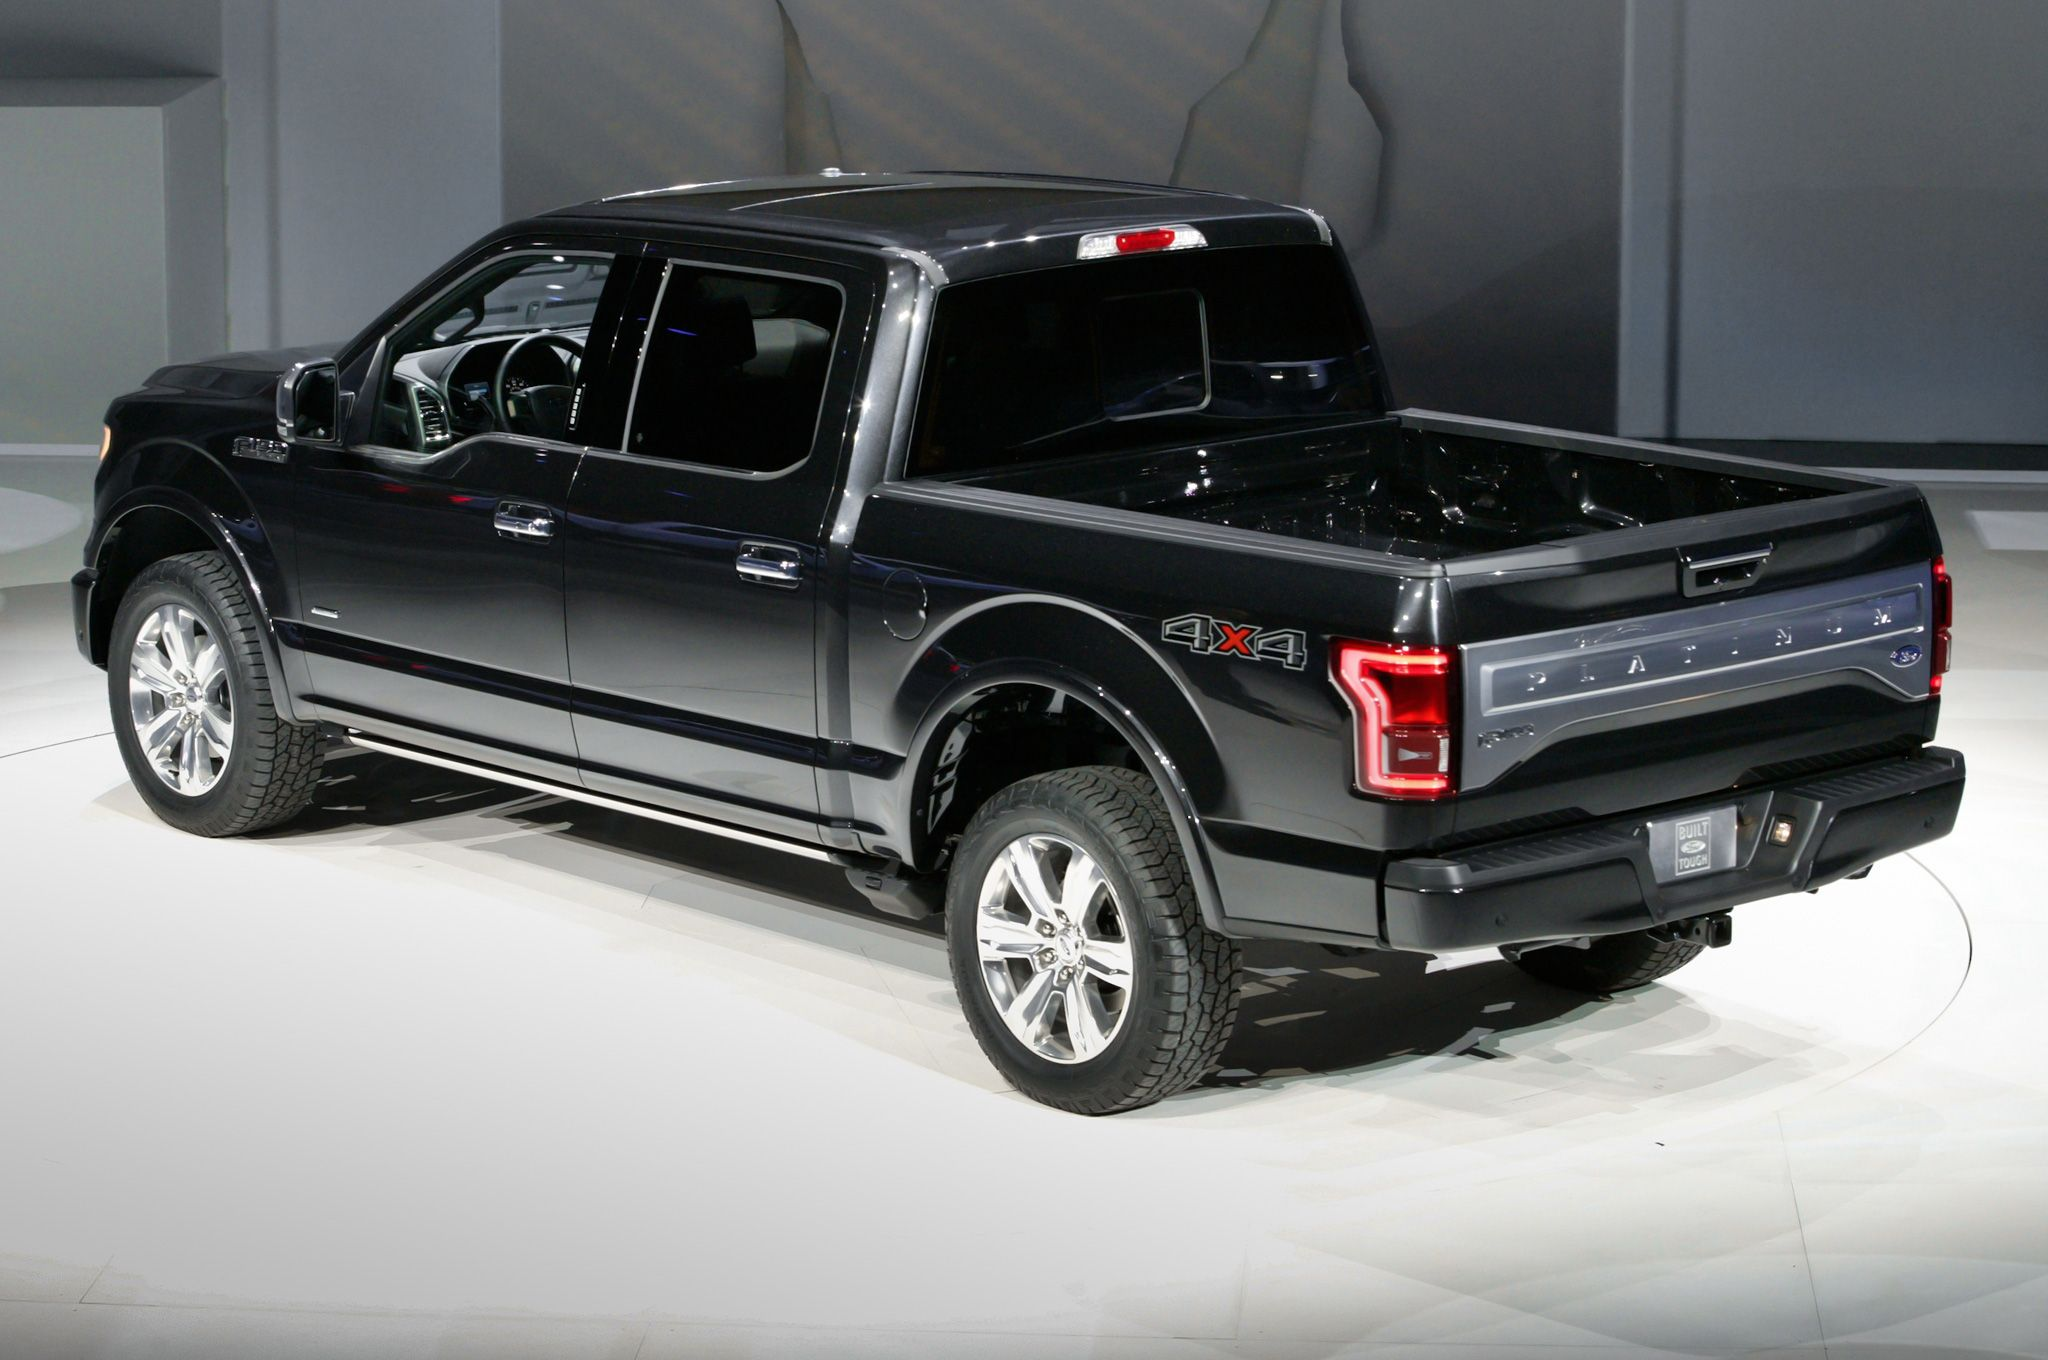 ford but this s take it f velociraptor raptor svt isnt on isn hennessey the t news supercharged